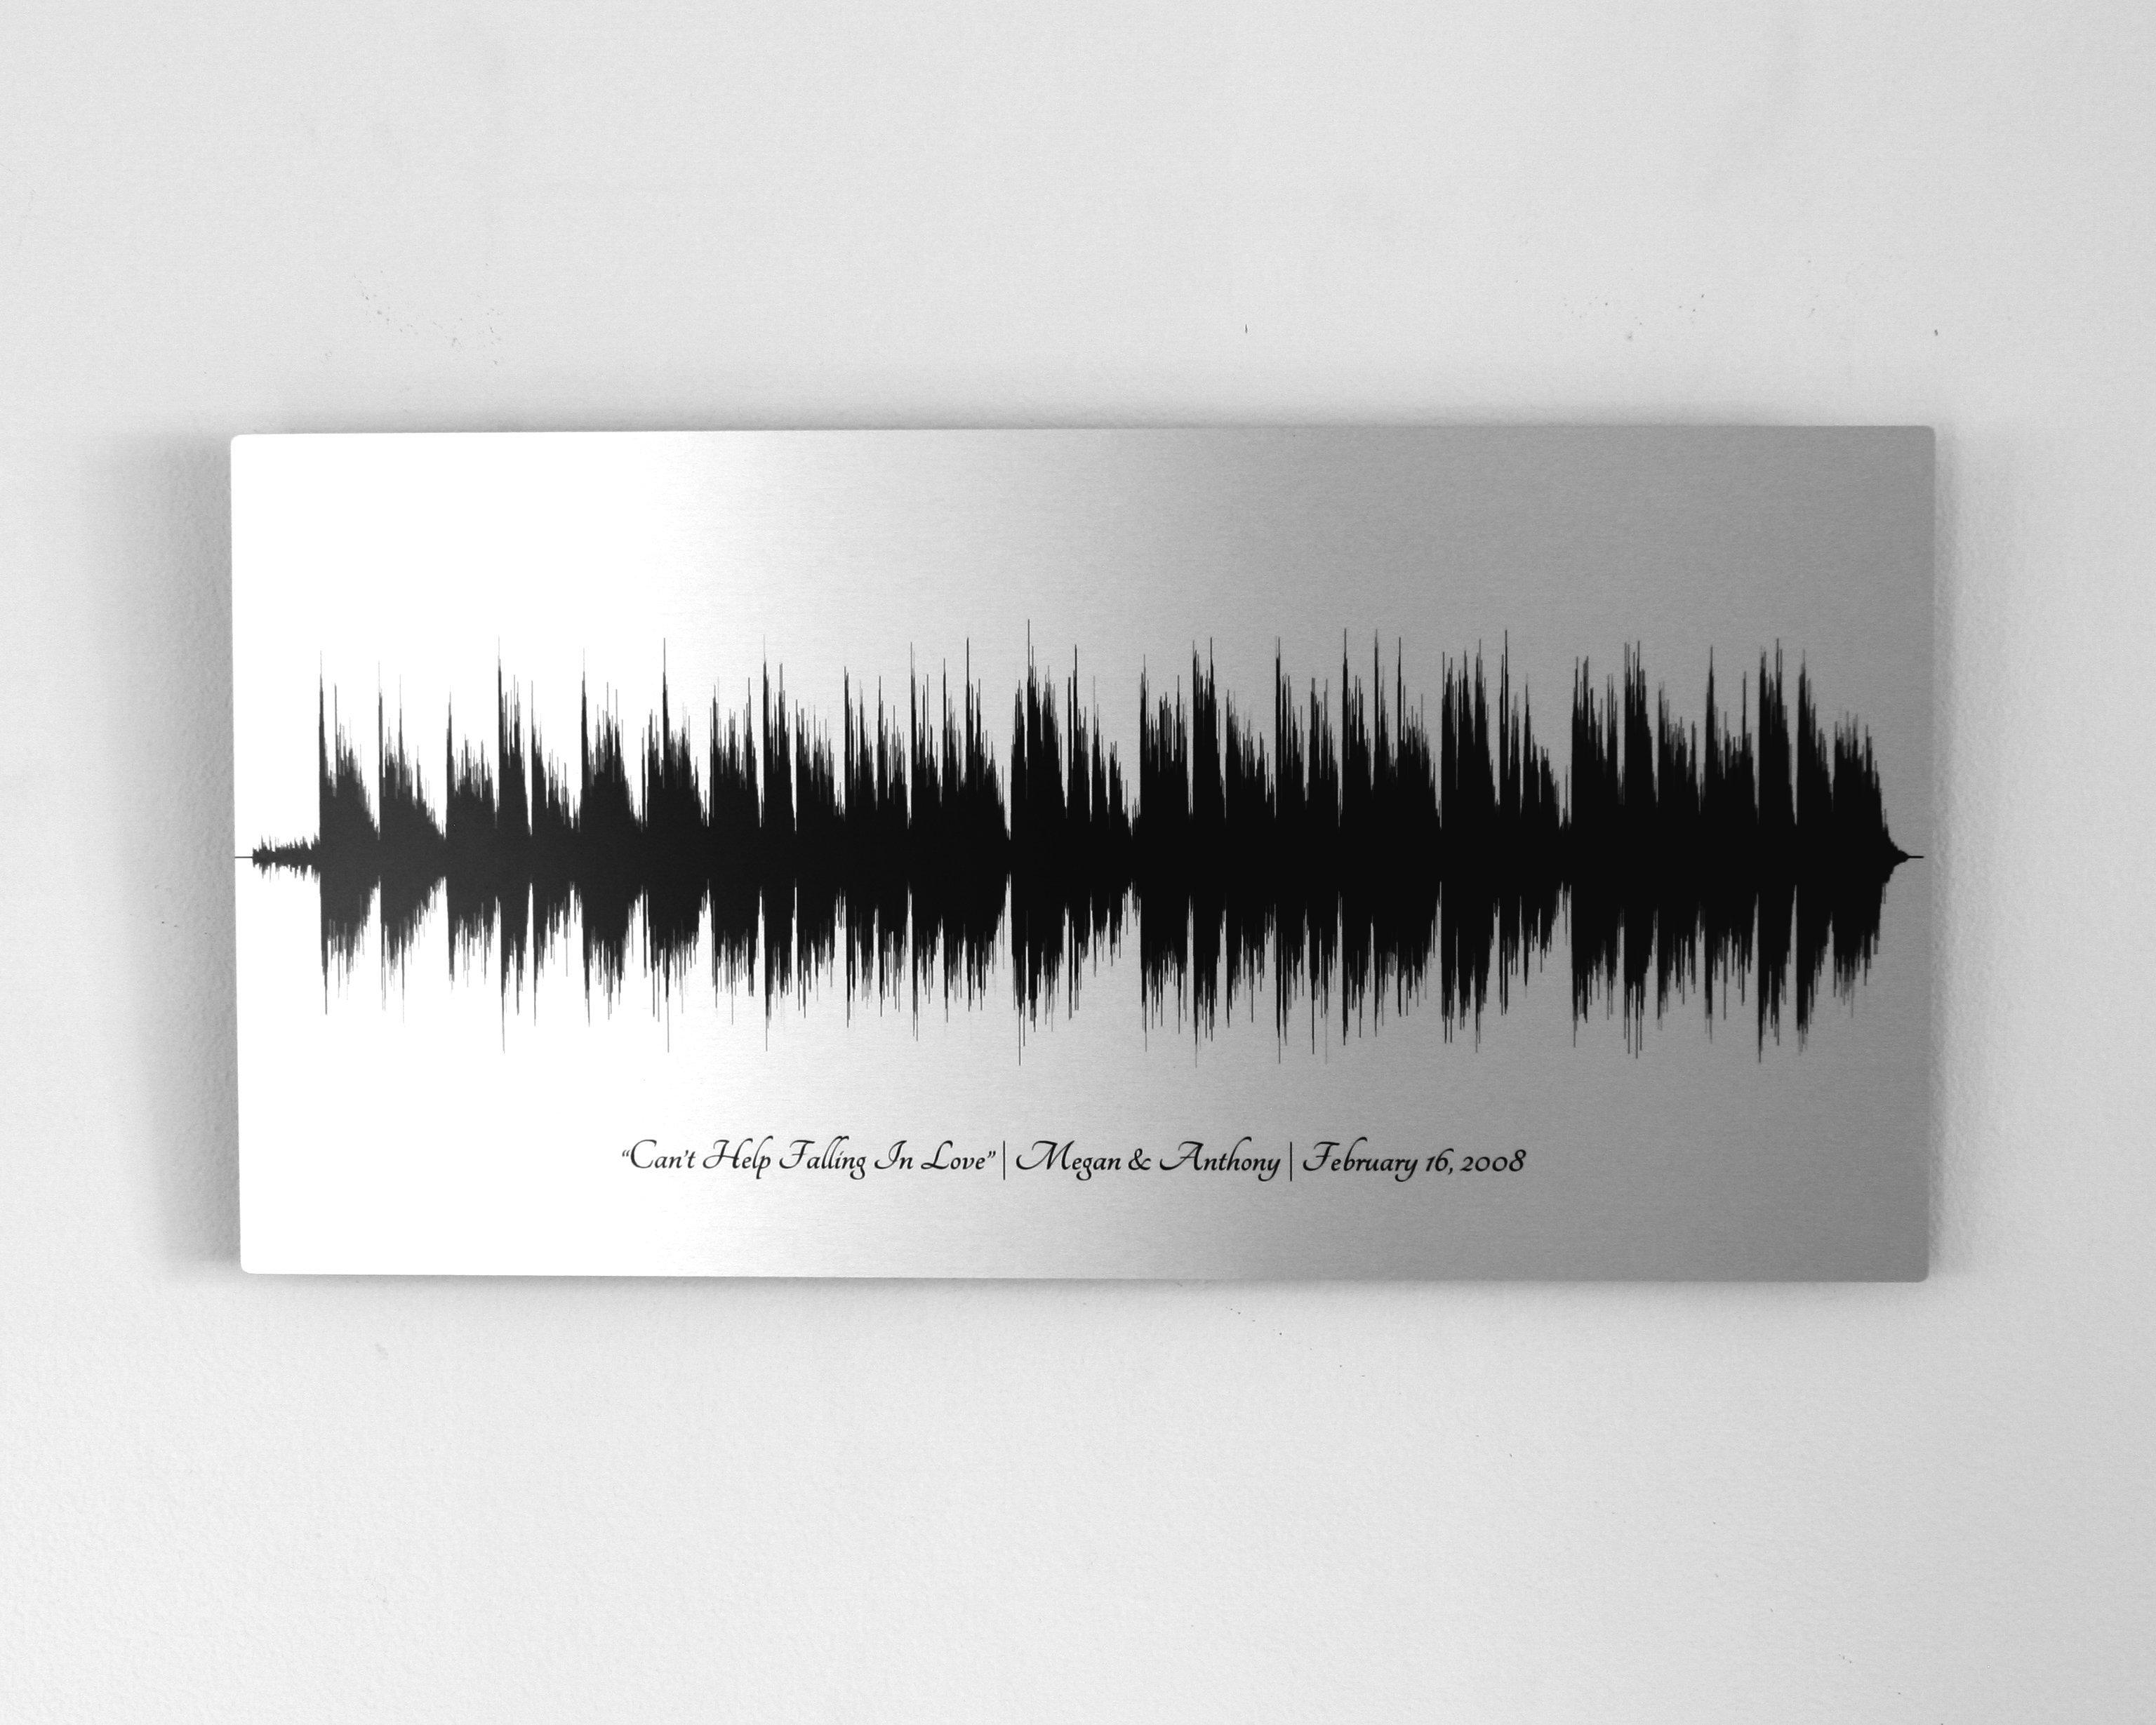 Tin Gifts For 10th Wedding Anniversary: 10 Year Anniversary Gifts, Tin Aluminum Metal Print, Sound